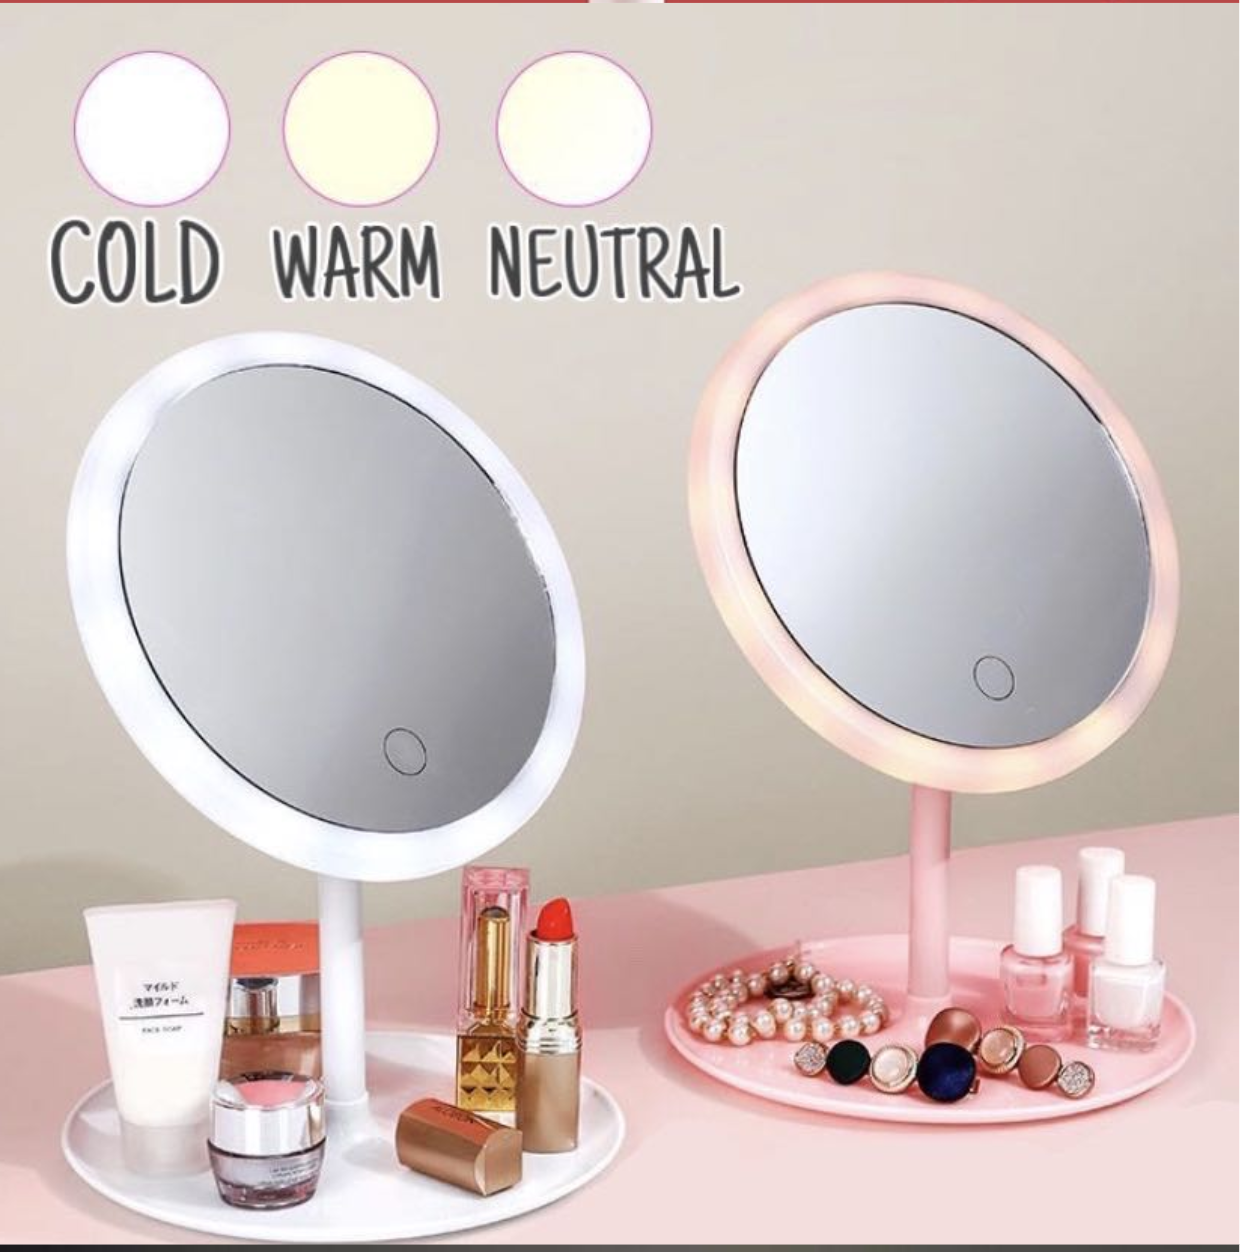 Led Makeup Mirror With Light Fill Tabletop Vanity Mirror Desktop Folding Portable Mirror Ringlight Smart Led Touch Screen Makeup Mirror Tabletop Portable Vanity Dimmable With 3 Lighting Levels Micro Usb Rechargeable